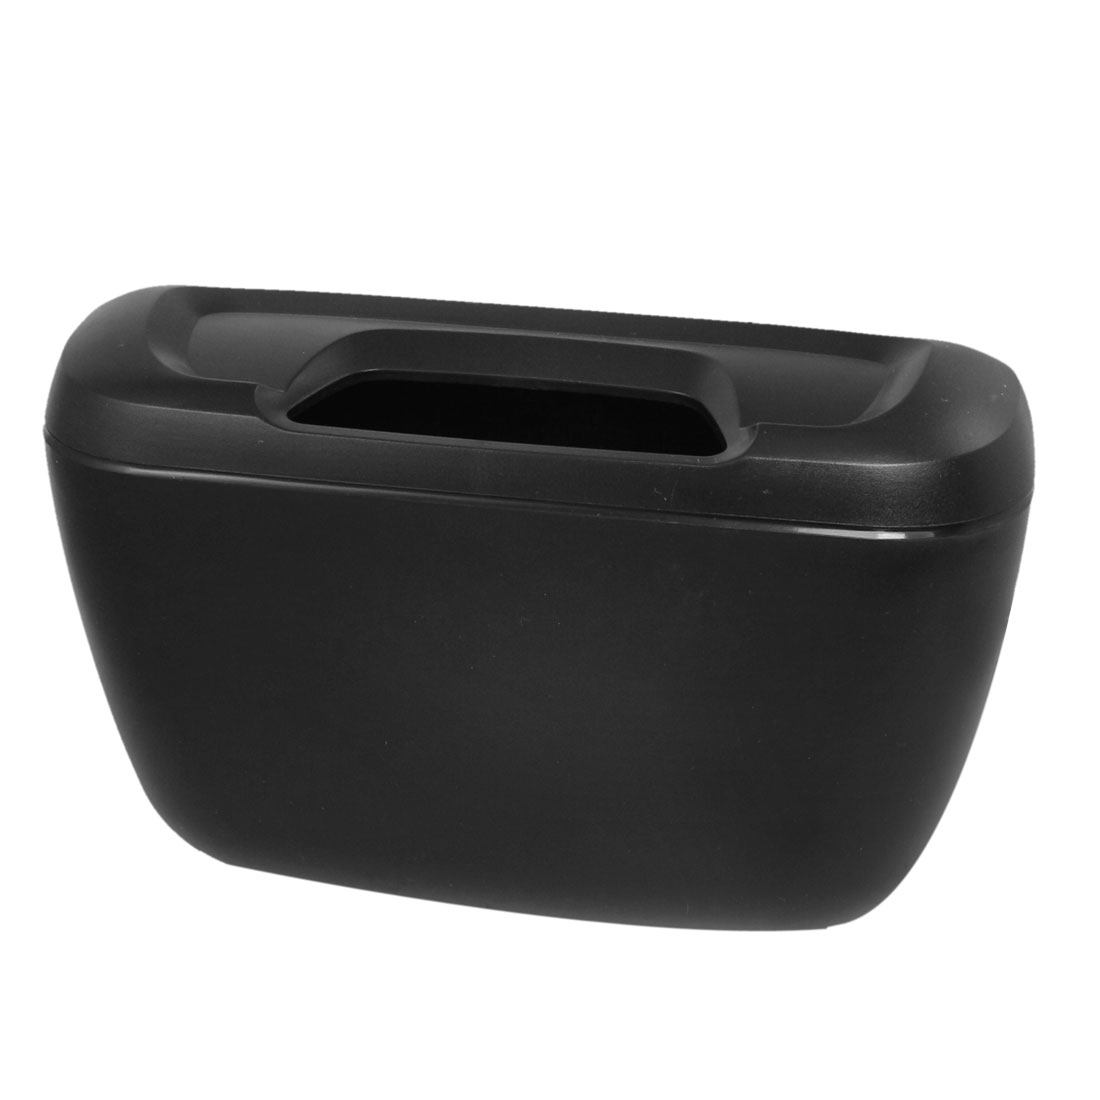 Auto Car Garbage Dust Case Holder Rubbish Trash Bin Can Box Black